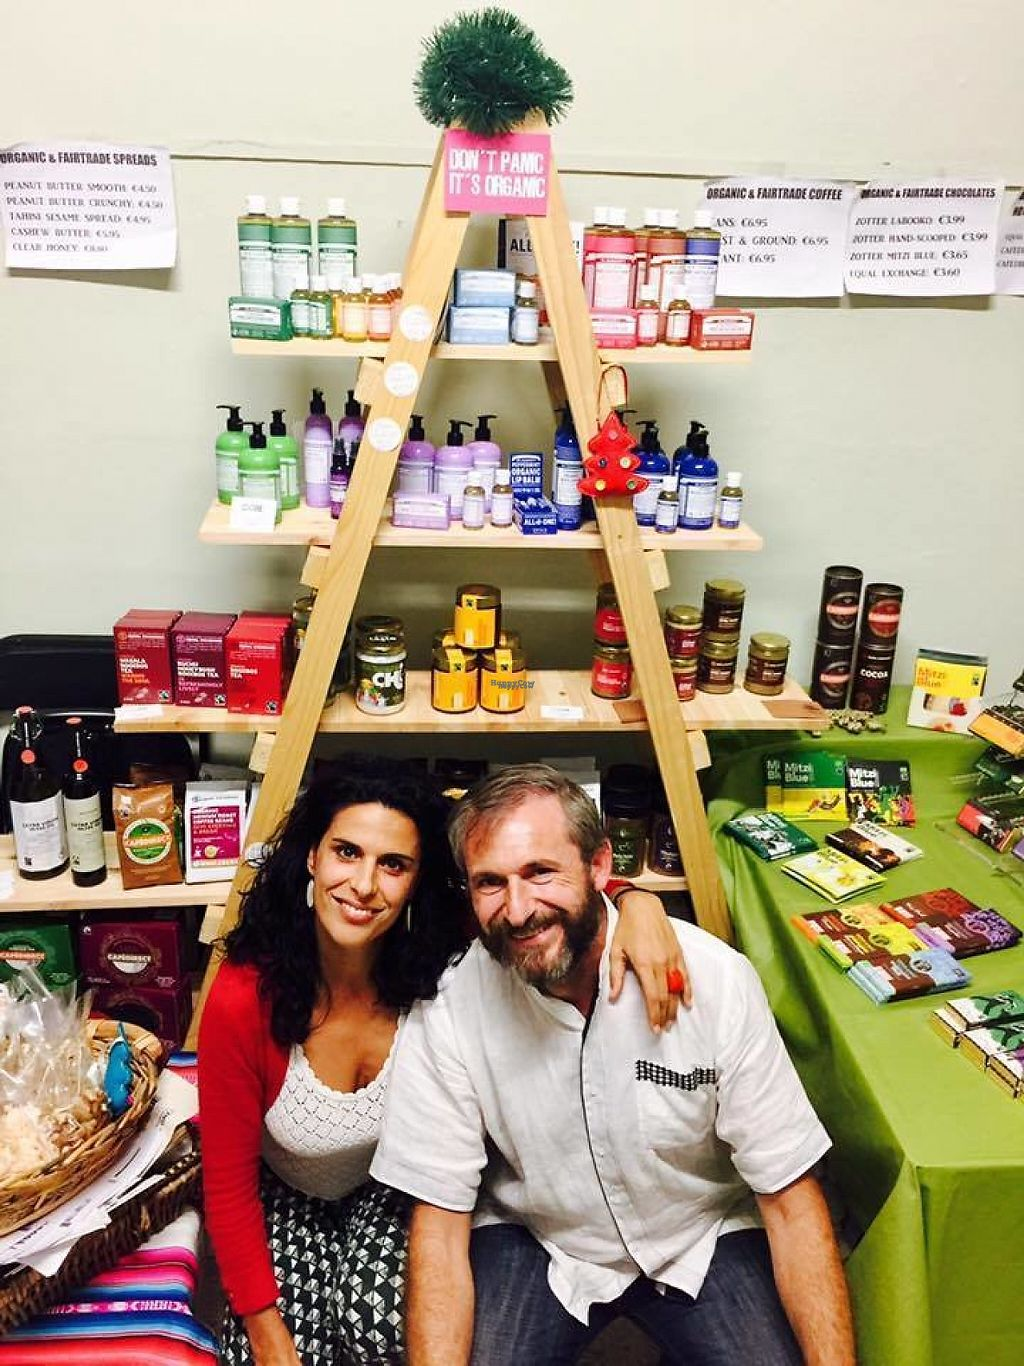 """Photo of Core Green  by <a href=""""/members/profile/CORE%20GREEN%20ecoFOOD"""">CORE GREEN ecoFOOD</a> <br/>Natalie & Aldo taking part in a number of fairs and festivals to promote to raise awareness about ethical consumption, organic farming and fairtrade values <br/> January 8, 2017  - <a href='/contact/abuse/image/85193/209589'>Report</a>"""